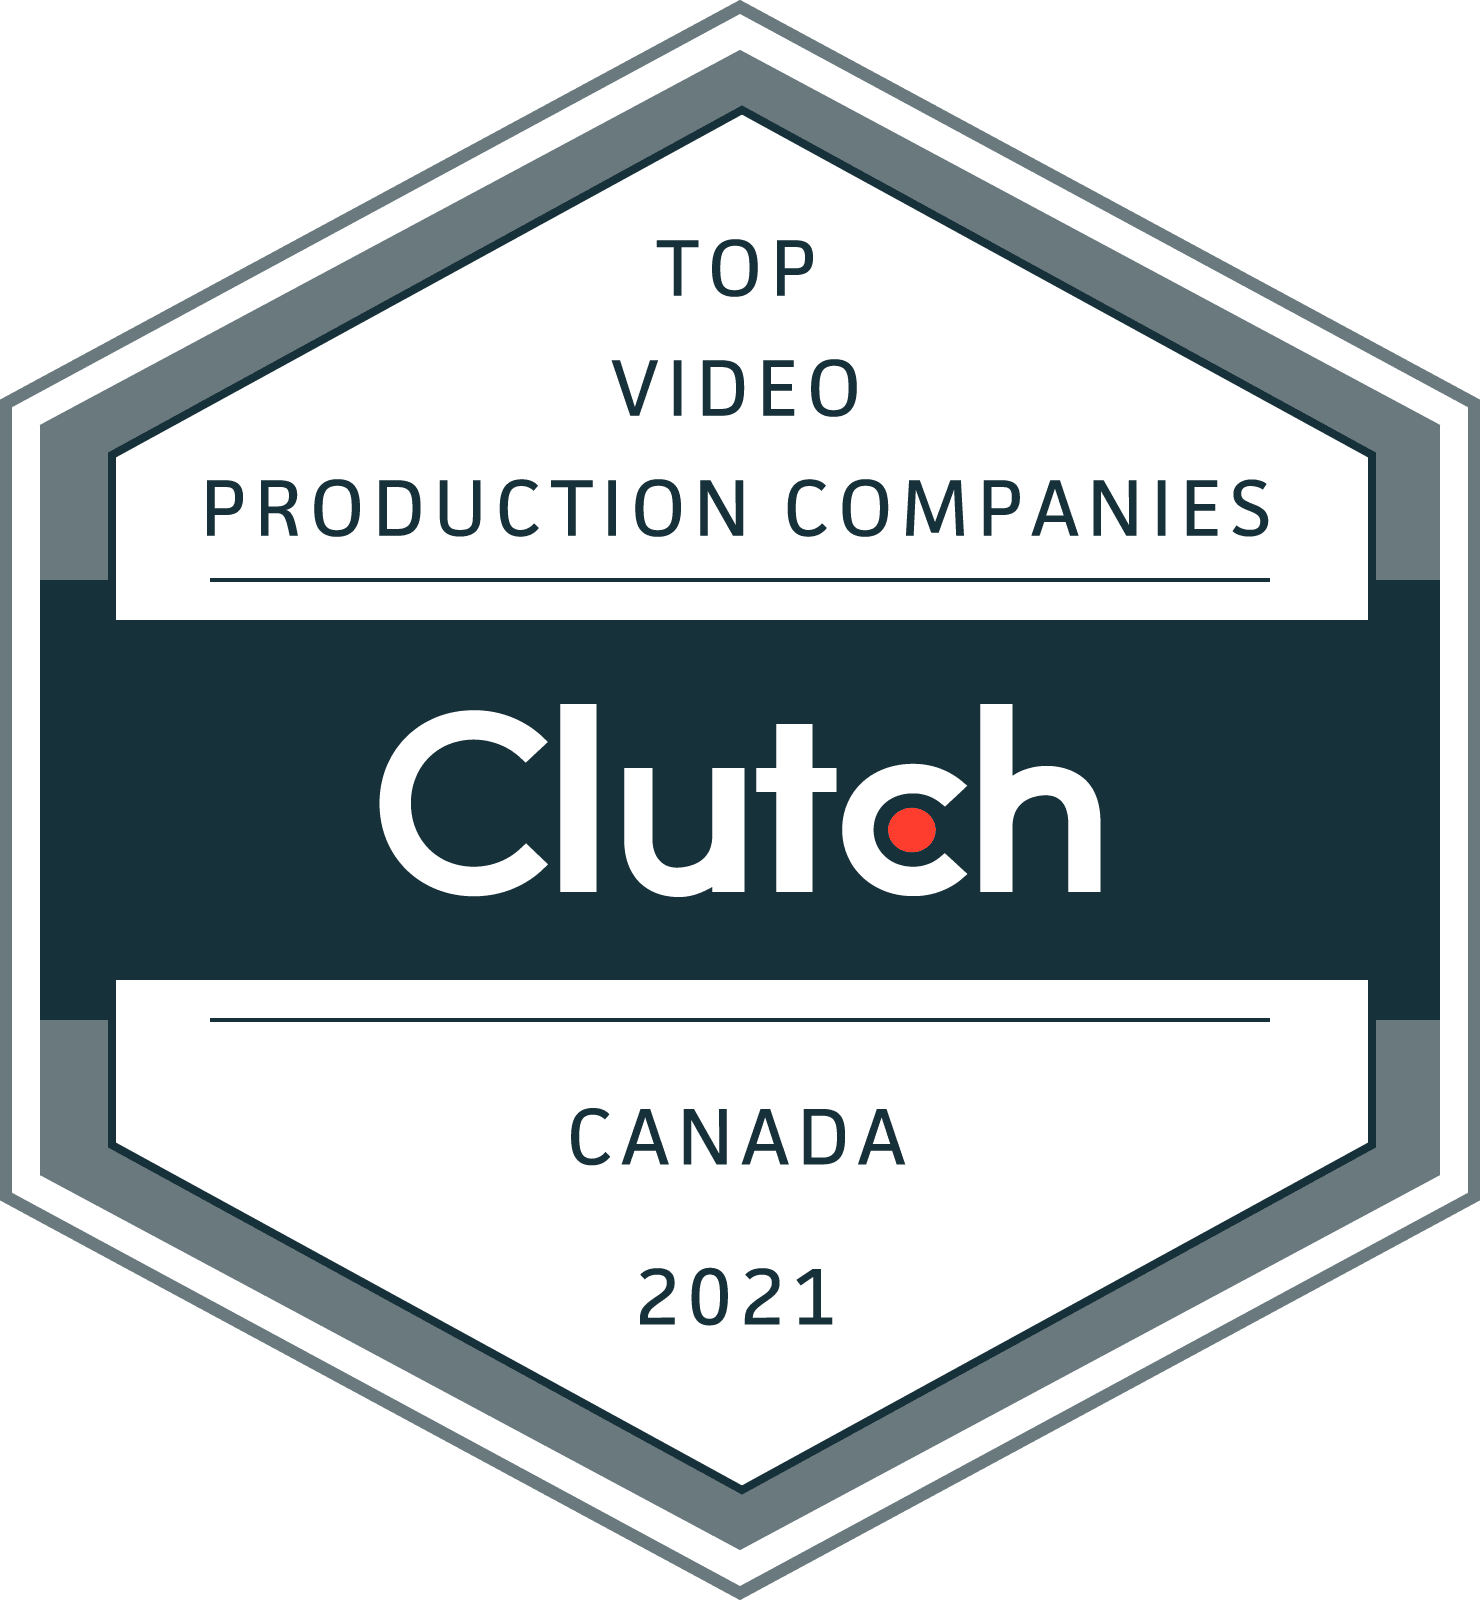 buzzmasters top video production companies company in canada 2021